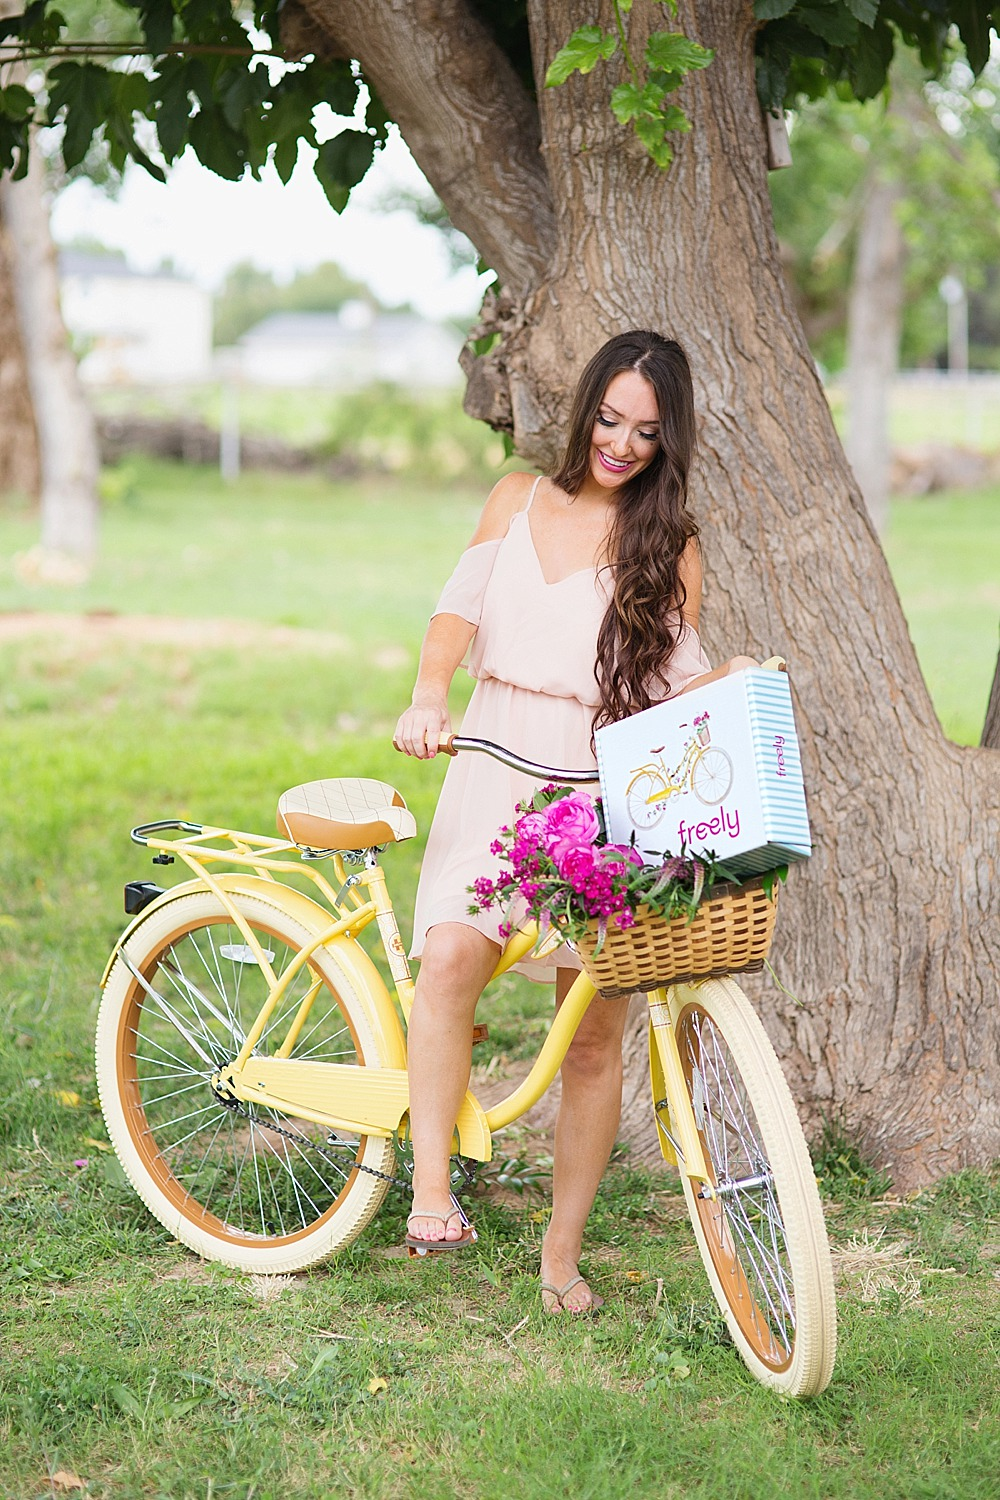 freely-box-yellow-bike-premiere-diana-elizabeth-photography-184